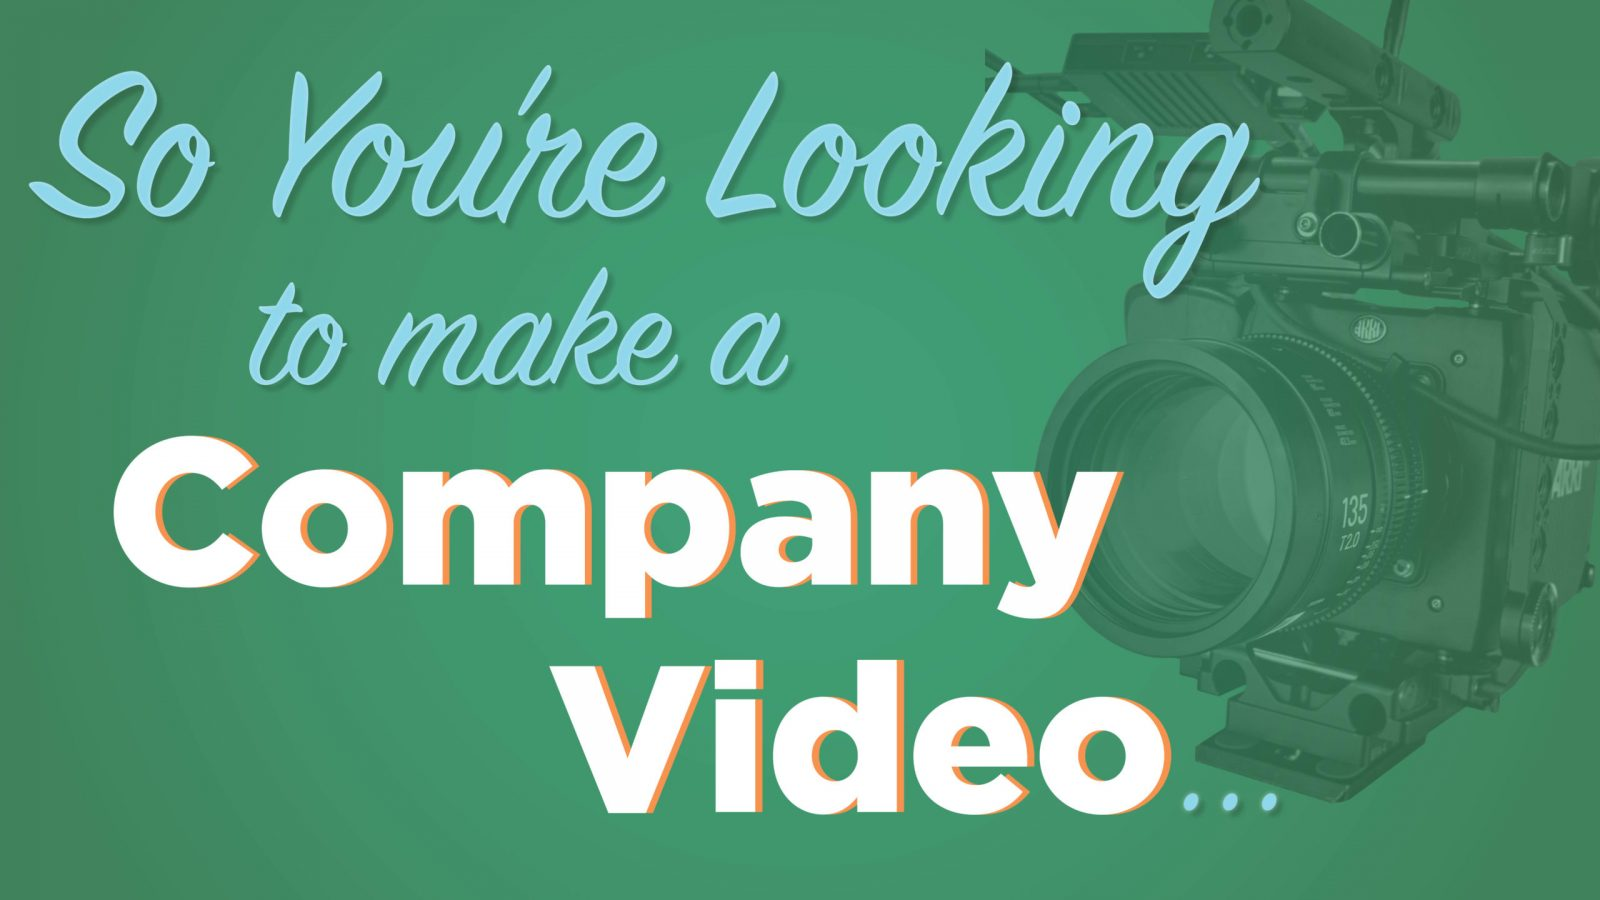 SO YOU'RE LOOKING TO MAKE A COMPANY VIDEO…